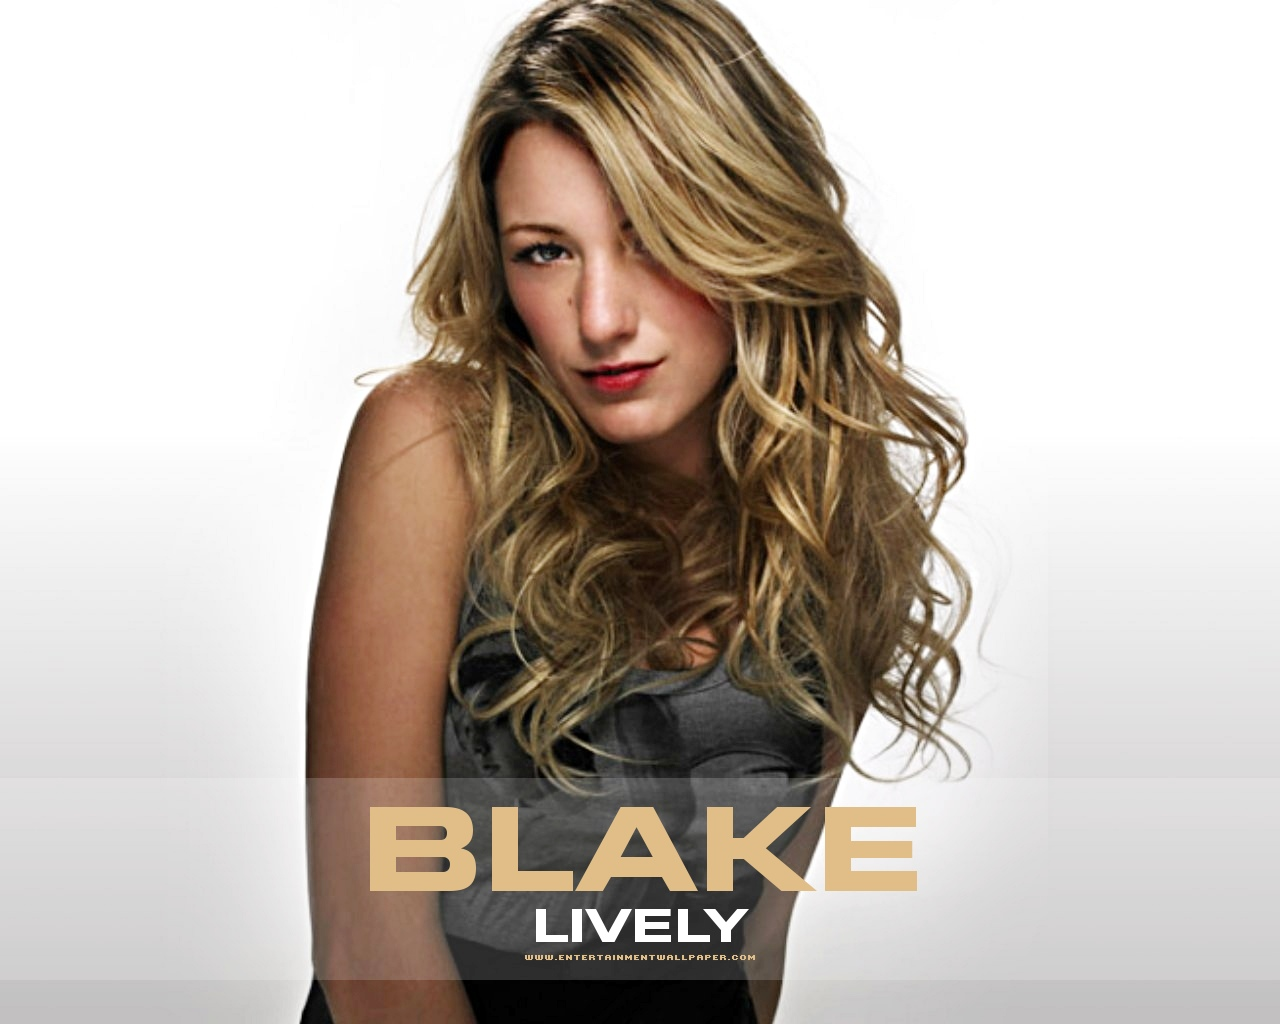 1280x1024 - Blake Lively Wallpapers 15